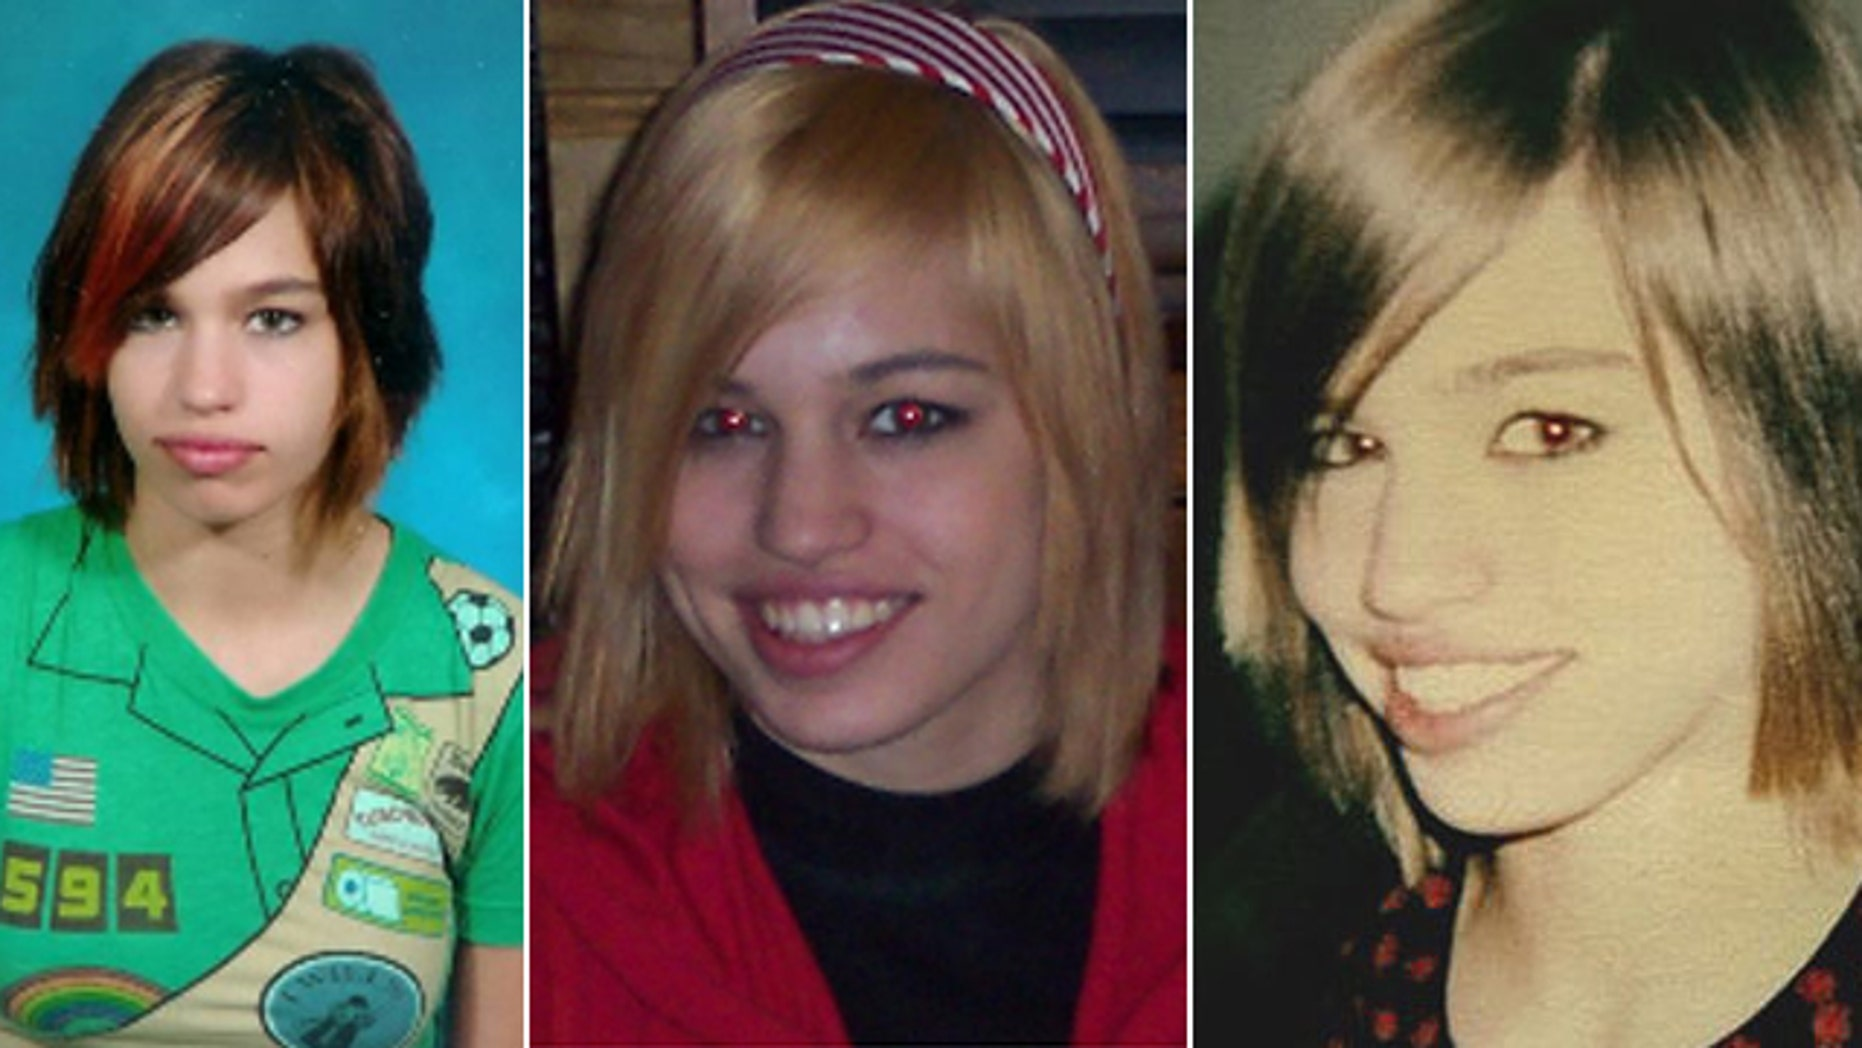 Kara Kopetsky, 17, disappeared from Belton, Missouri on May 4, 2007. She was last seen leaving Belton High School where she recently completed her junior year.  (findkarakopetsky.com)